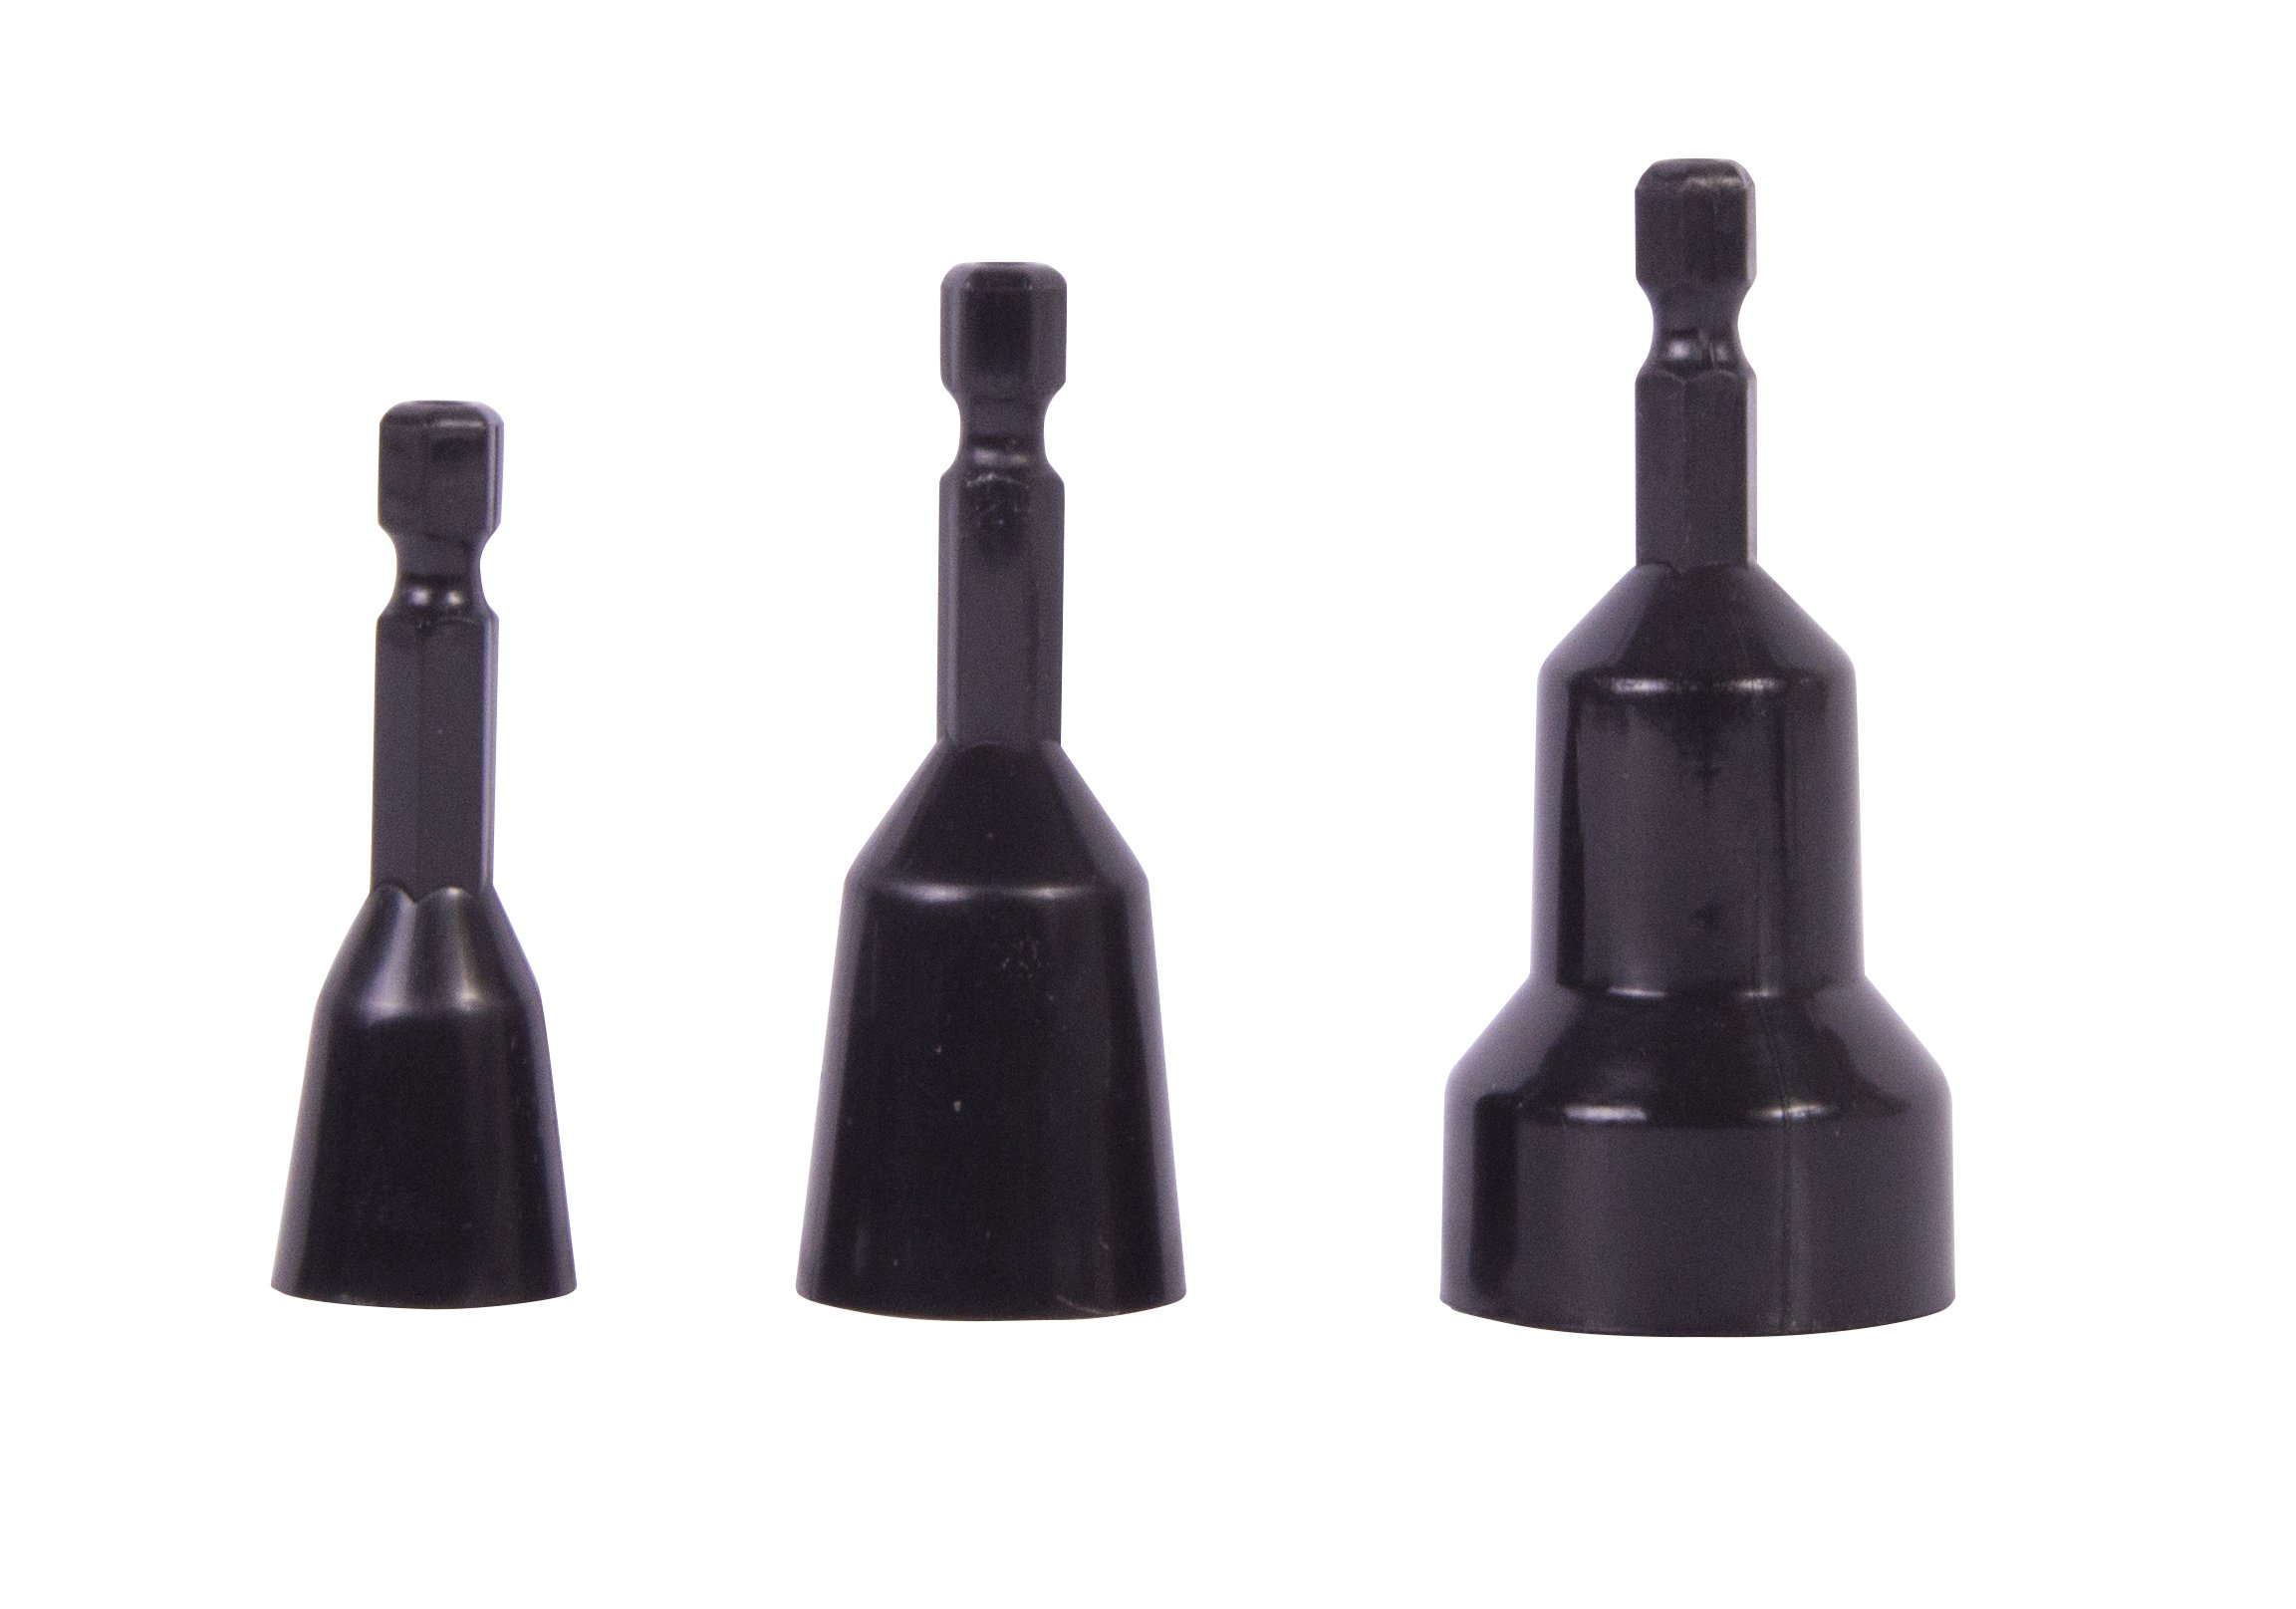 Gardner Bender WB1 Connector Bit Set, ¼ in. Electrical Driver, Fits: Standard and Winged Wire Nuts, 3 Pk, Black